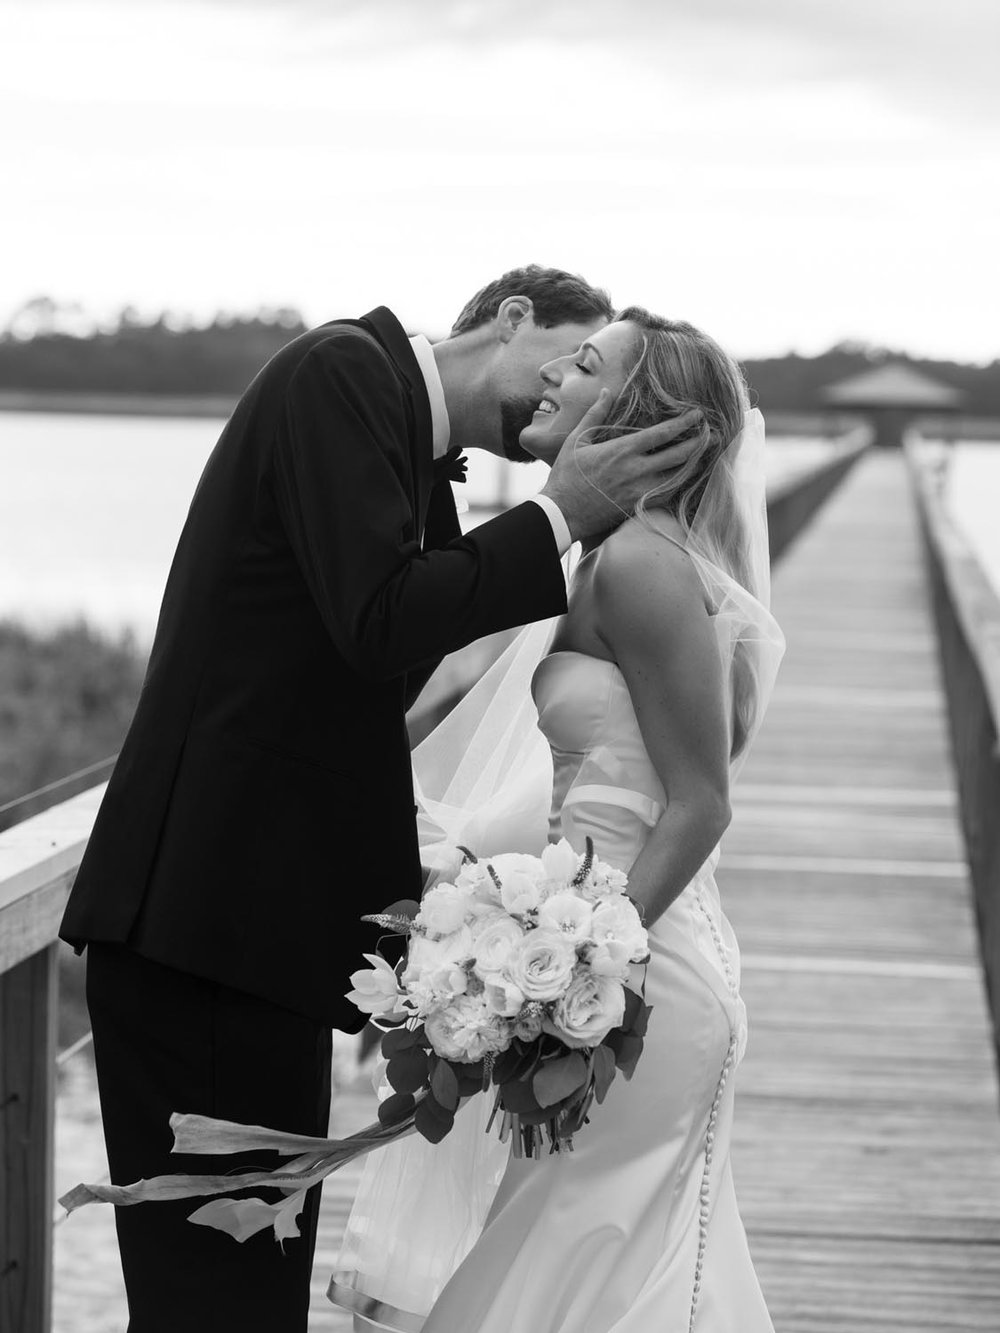 Romantic waterfront Charleston wedding. Wedding planning and design by A Charleston Bride.